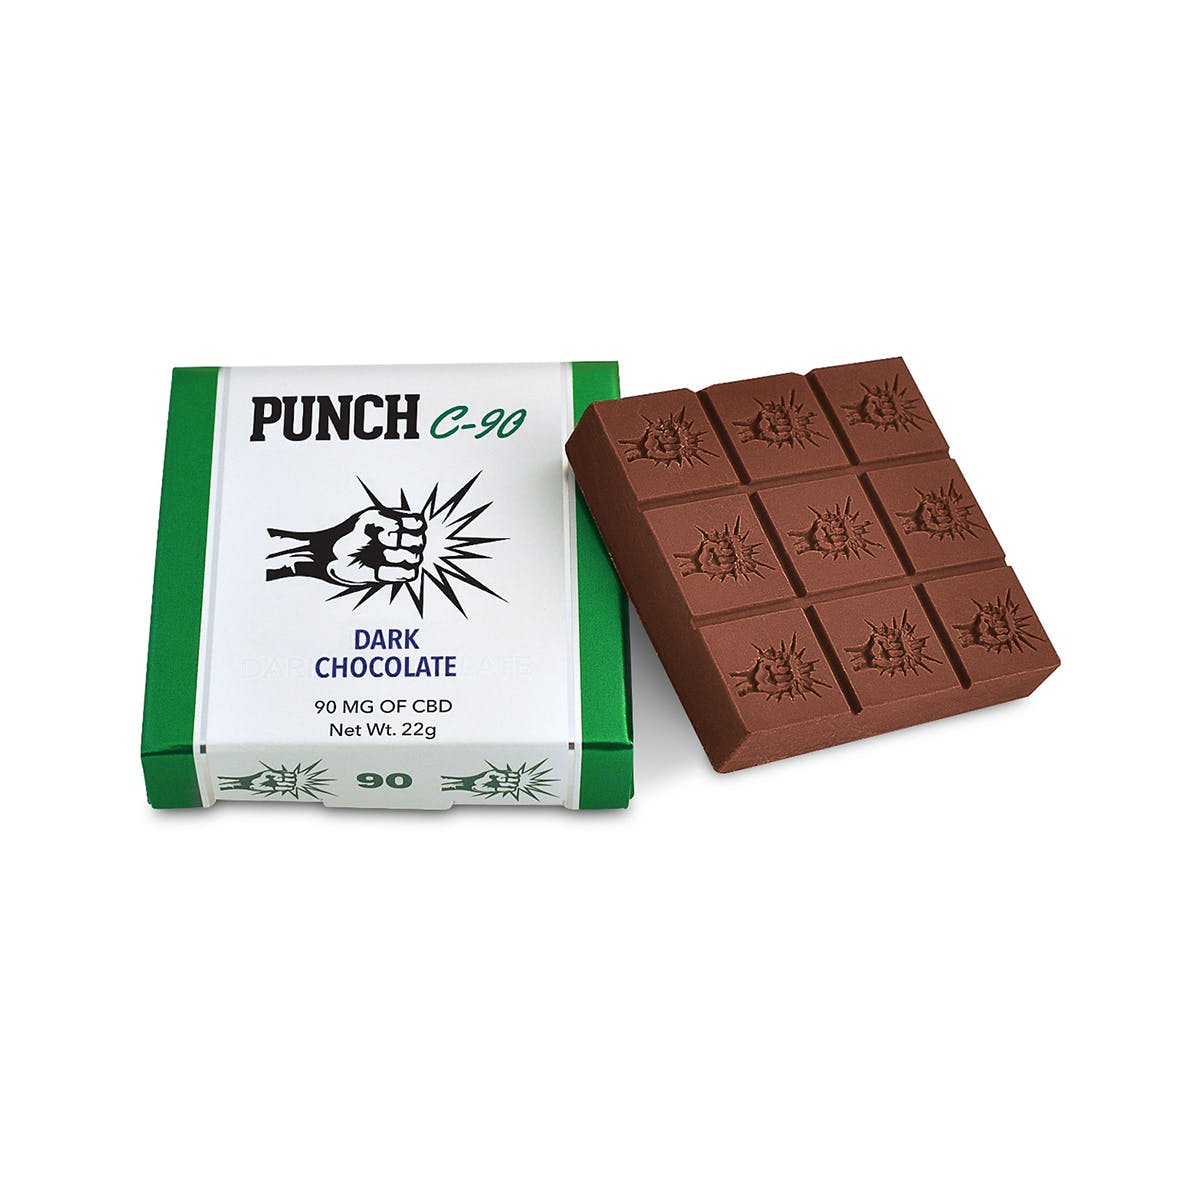 marijuana-dispensaries-county-line-organics-in-ridgecrest-c-90-cbd-dark-chocolate-90mg